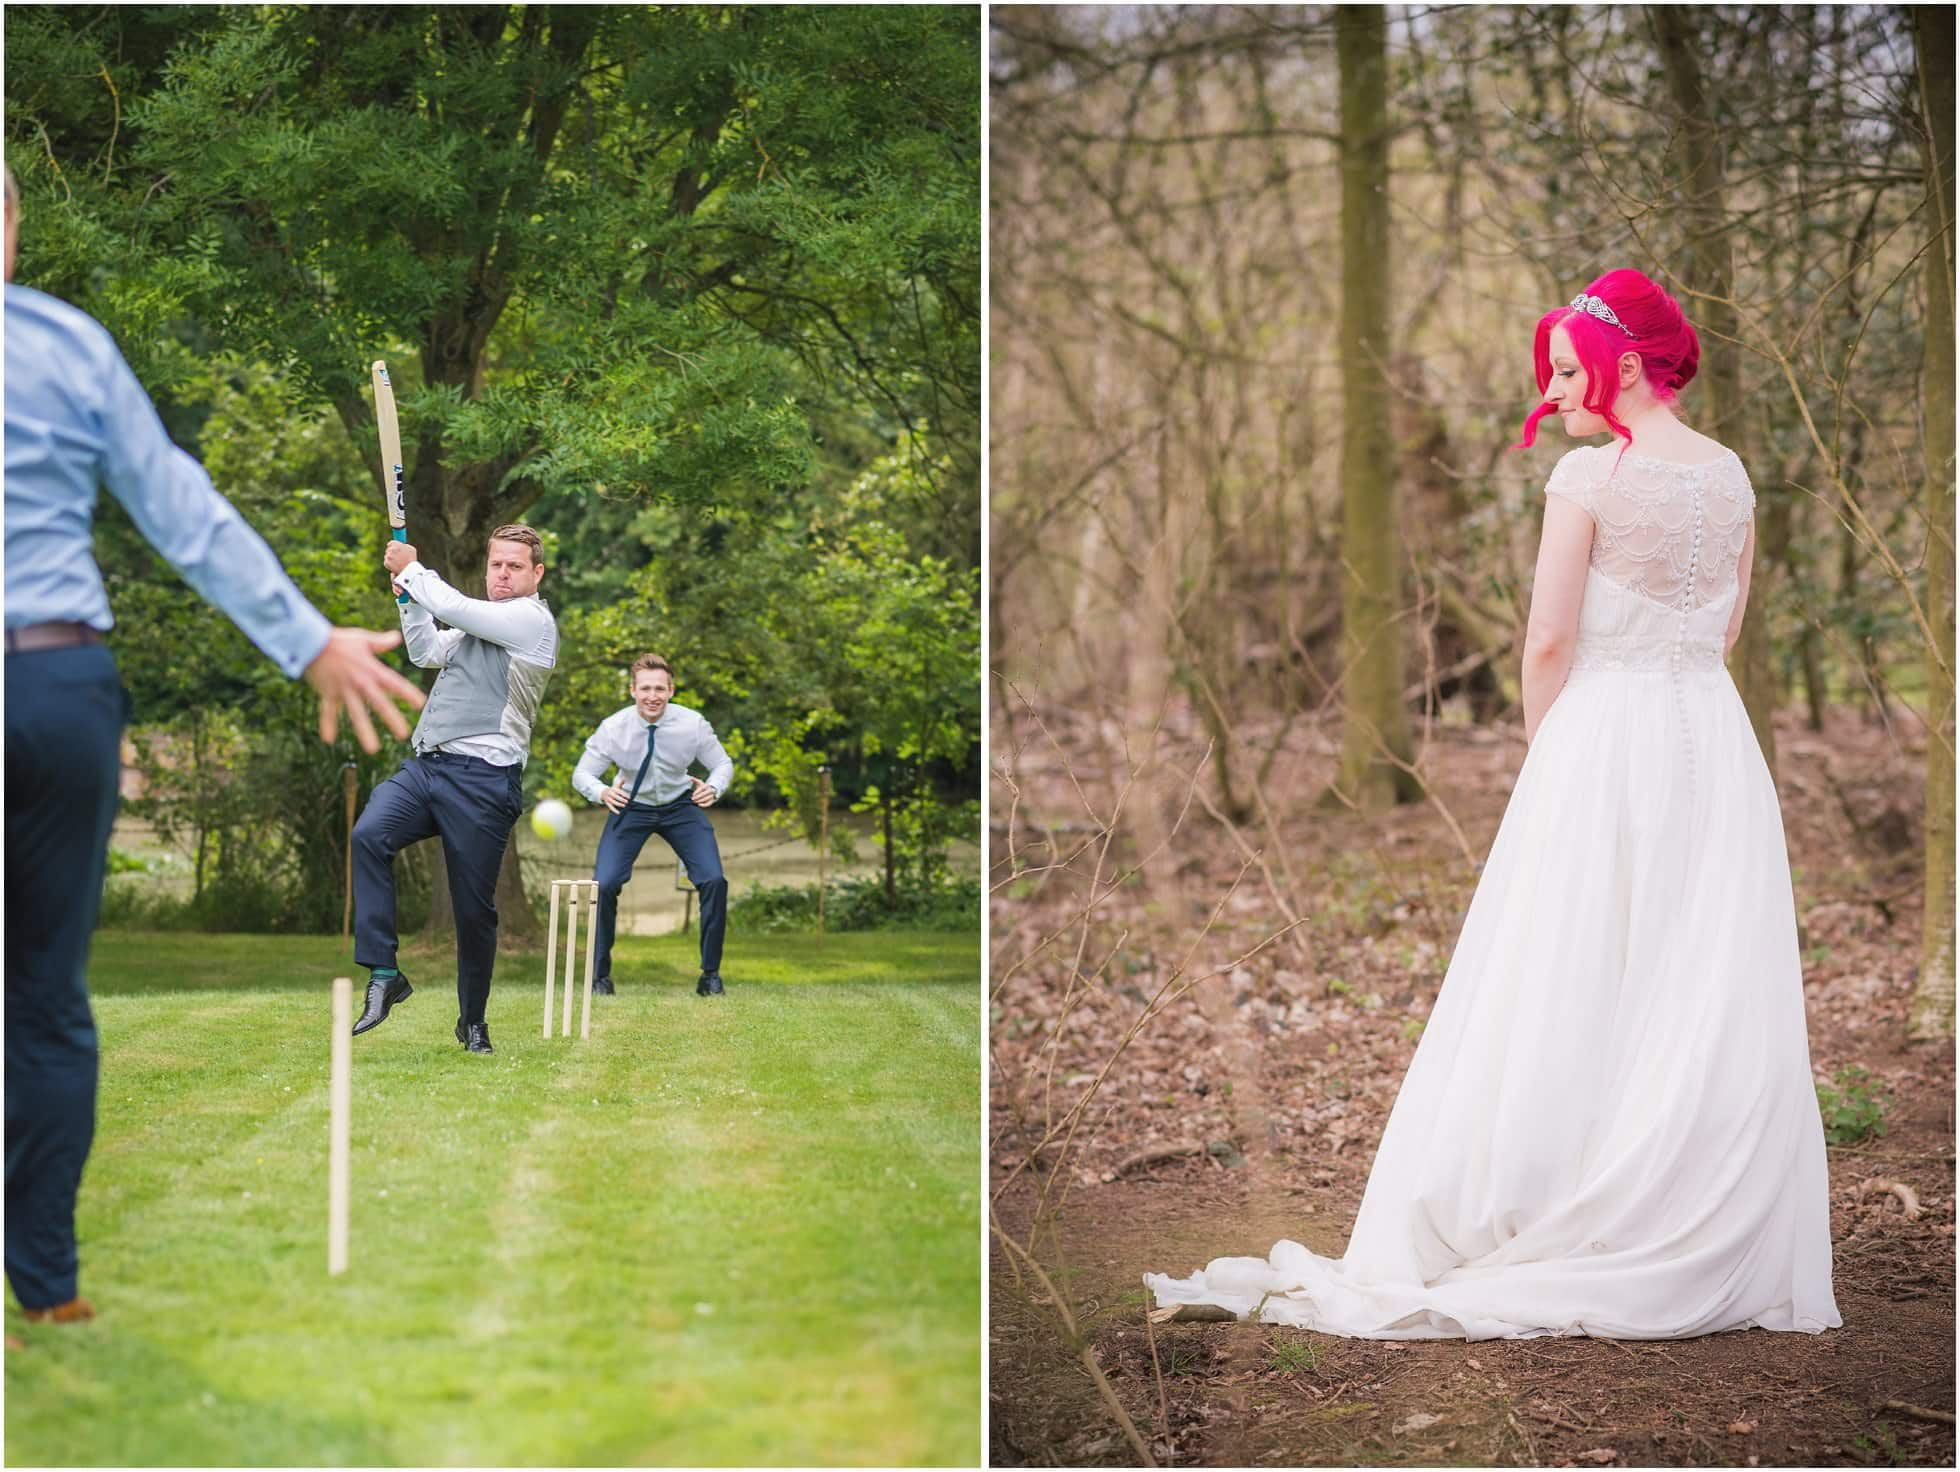 Cricket and a wedding